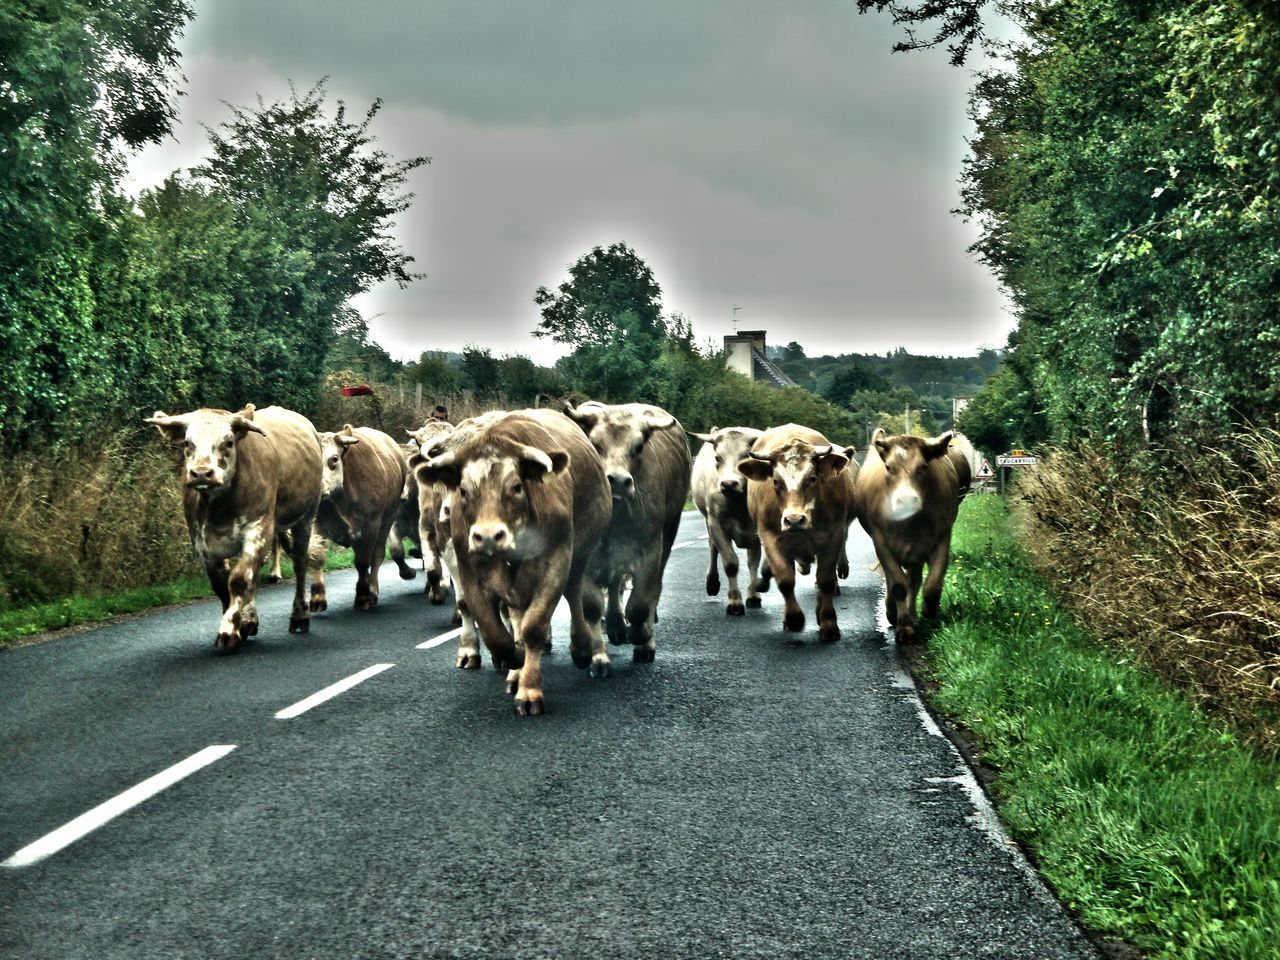 Agriculture Animal Animal Photography Cows Grazing Day Domestic Animals Herd Large Group Of Animals Livestock Mammal No People Outdoors Road Sky Street